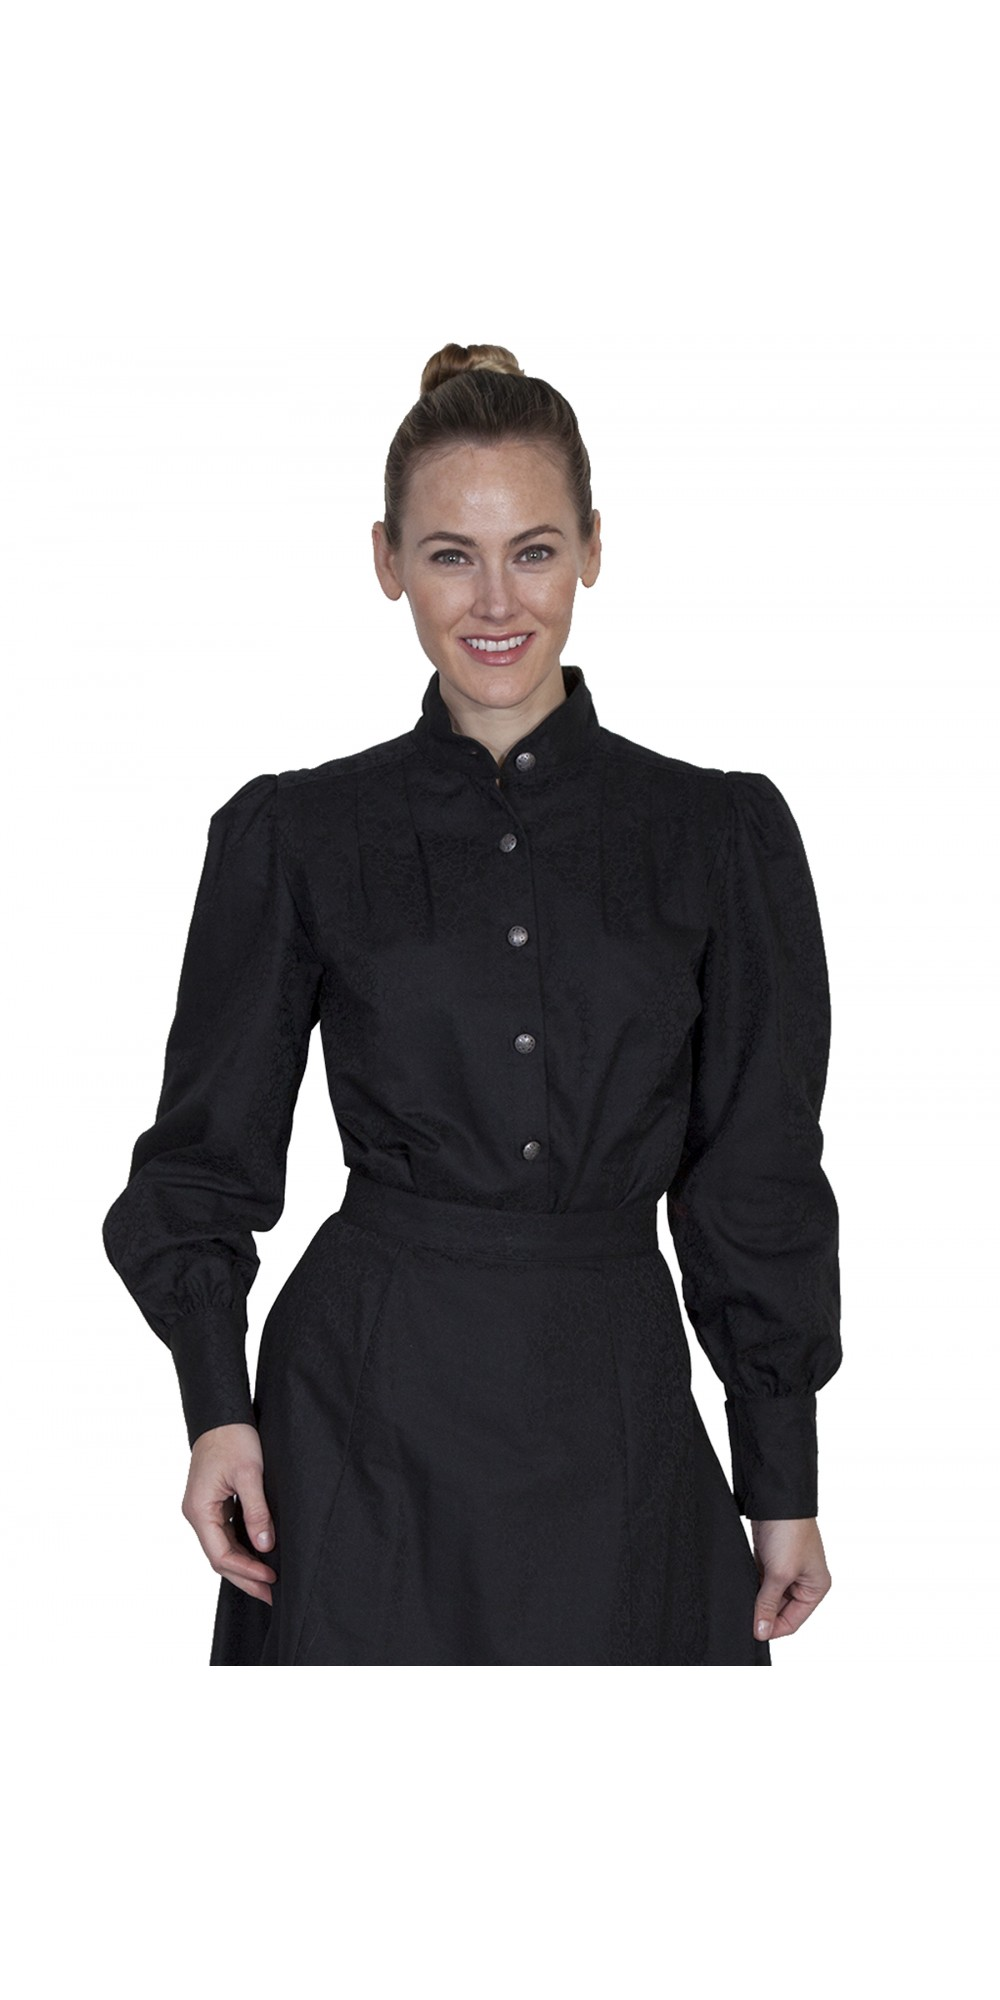 438c63032ab33 Wahmaker Victorian Style Band Collar Black Blouse by Scully Leather